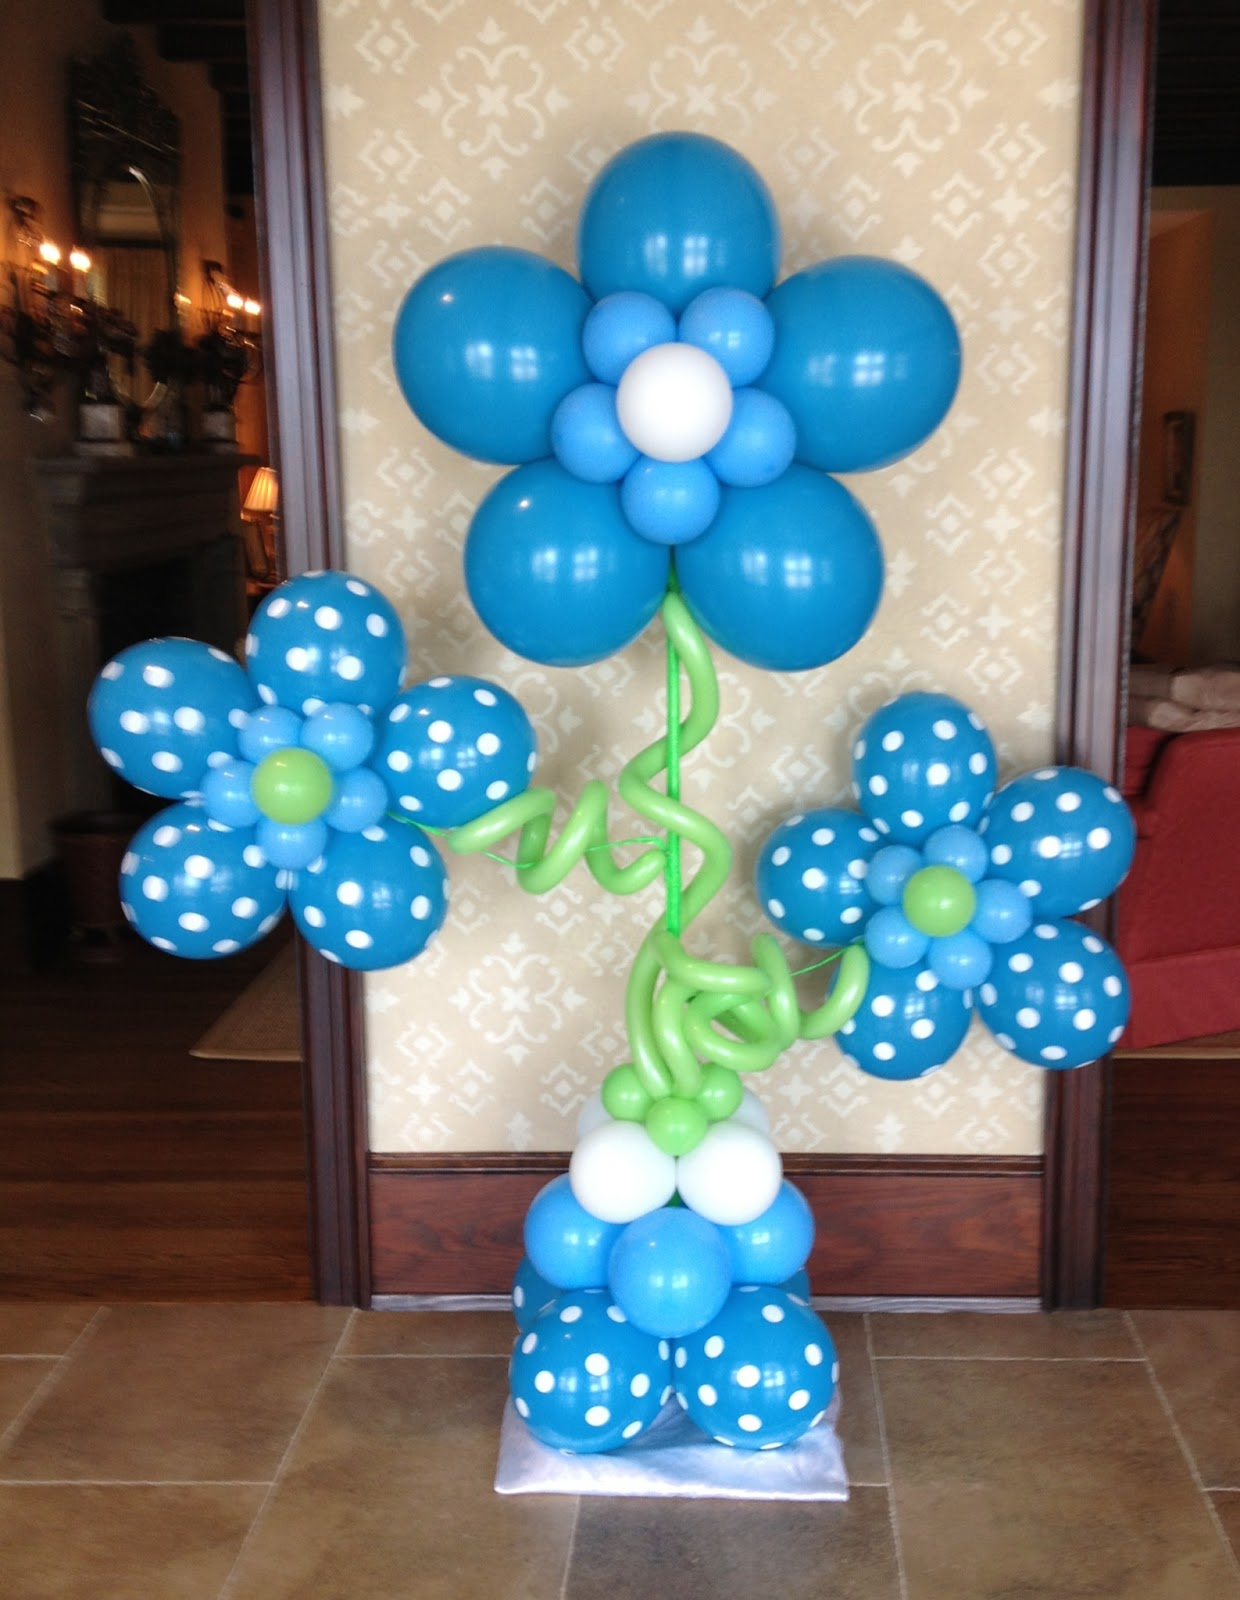 Party people event decorating company baby reveal party lake wales florida j - Idee deco baby shower ...